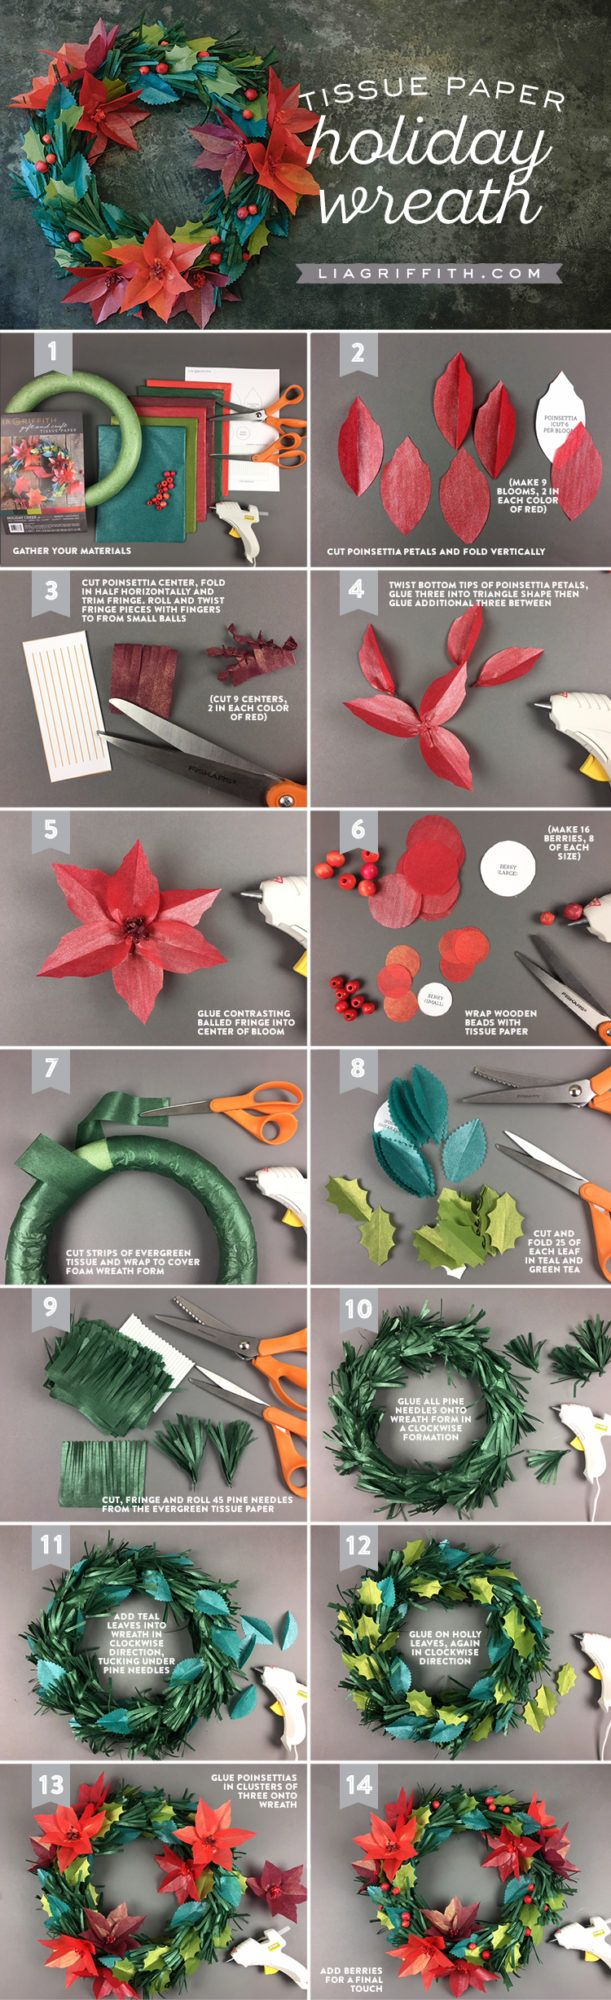 Tissue Paper Holiday Wreath